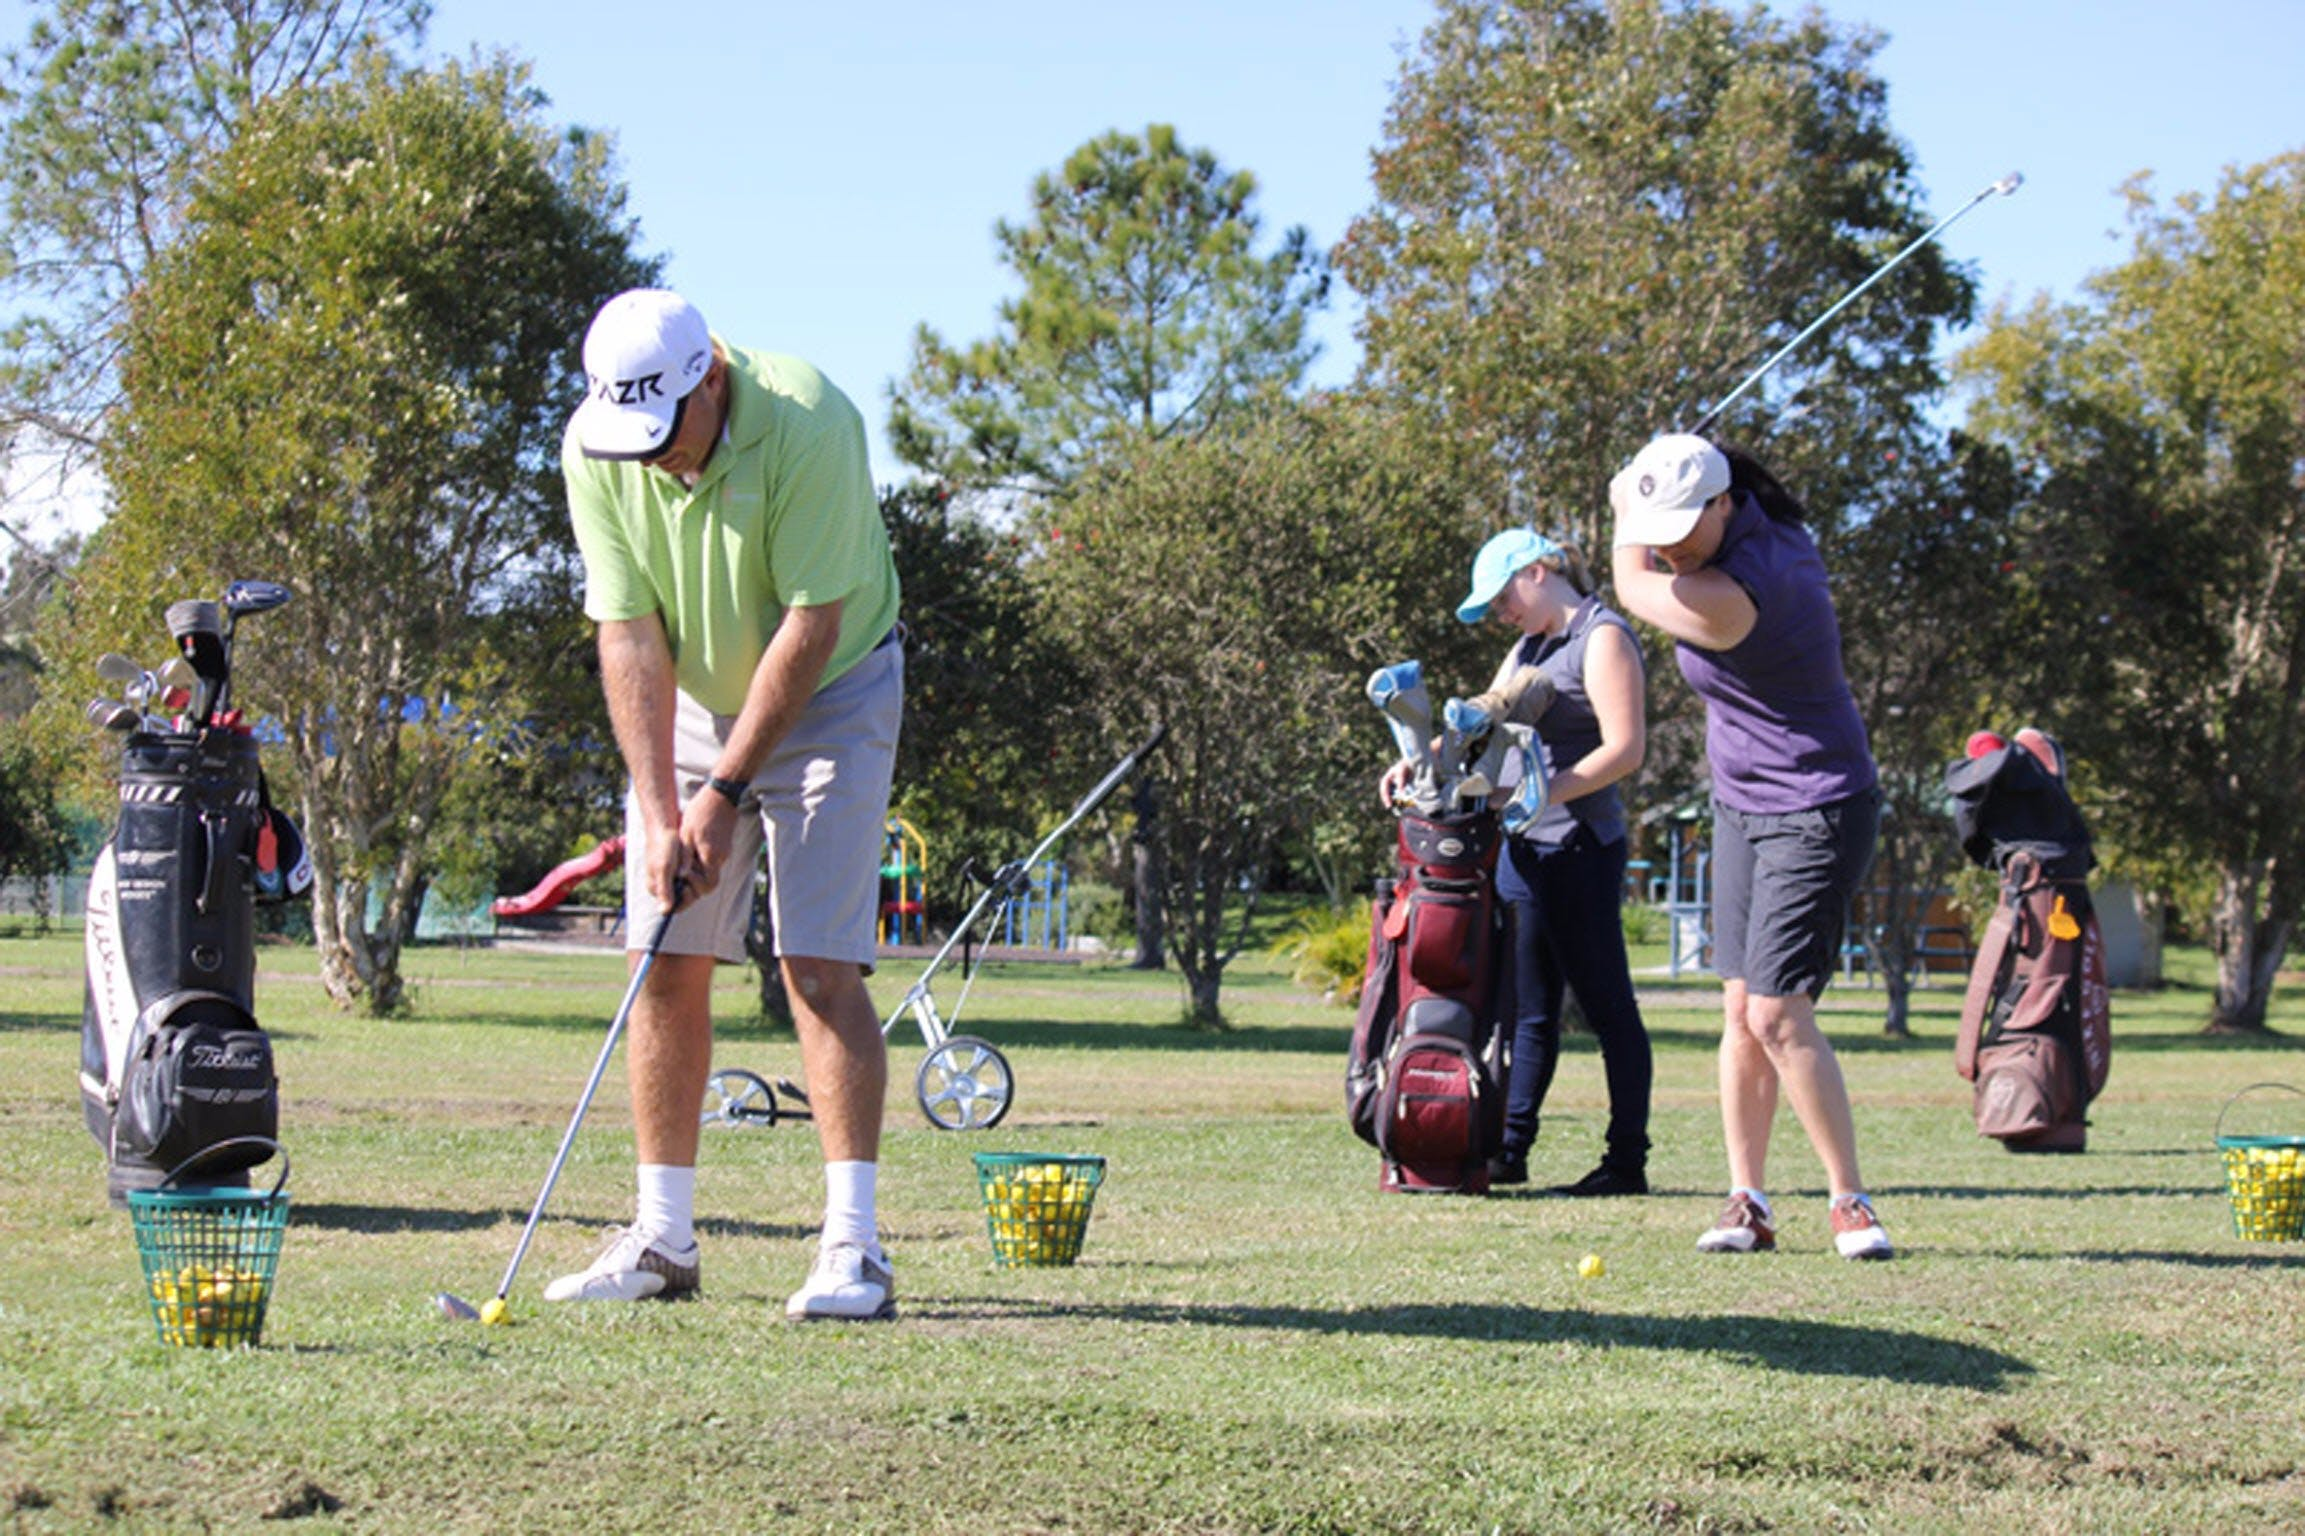 Nambucca River Golf Driving Range - Tourism Brisbane